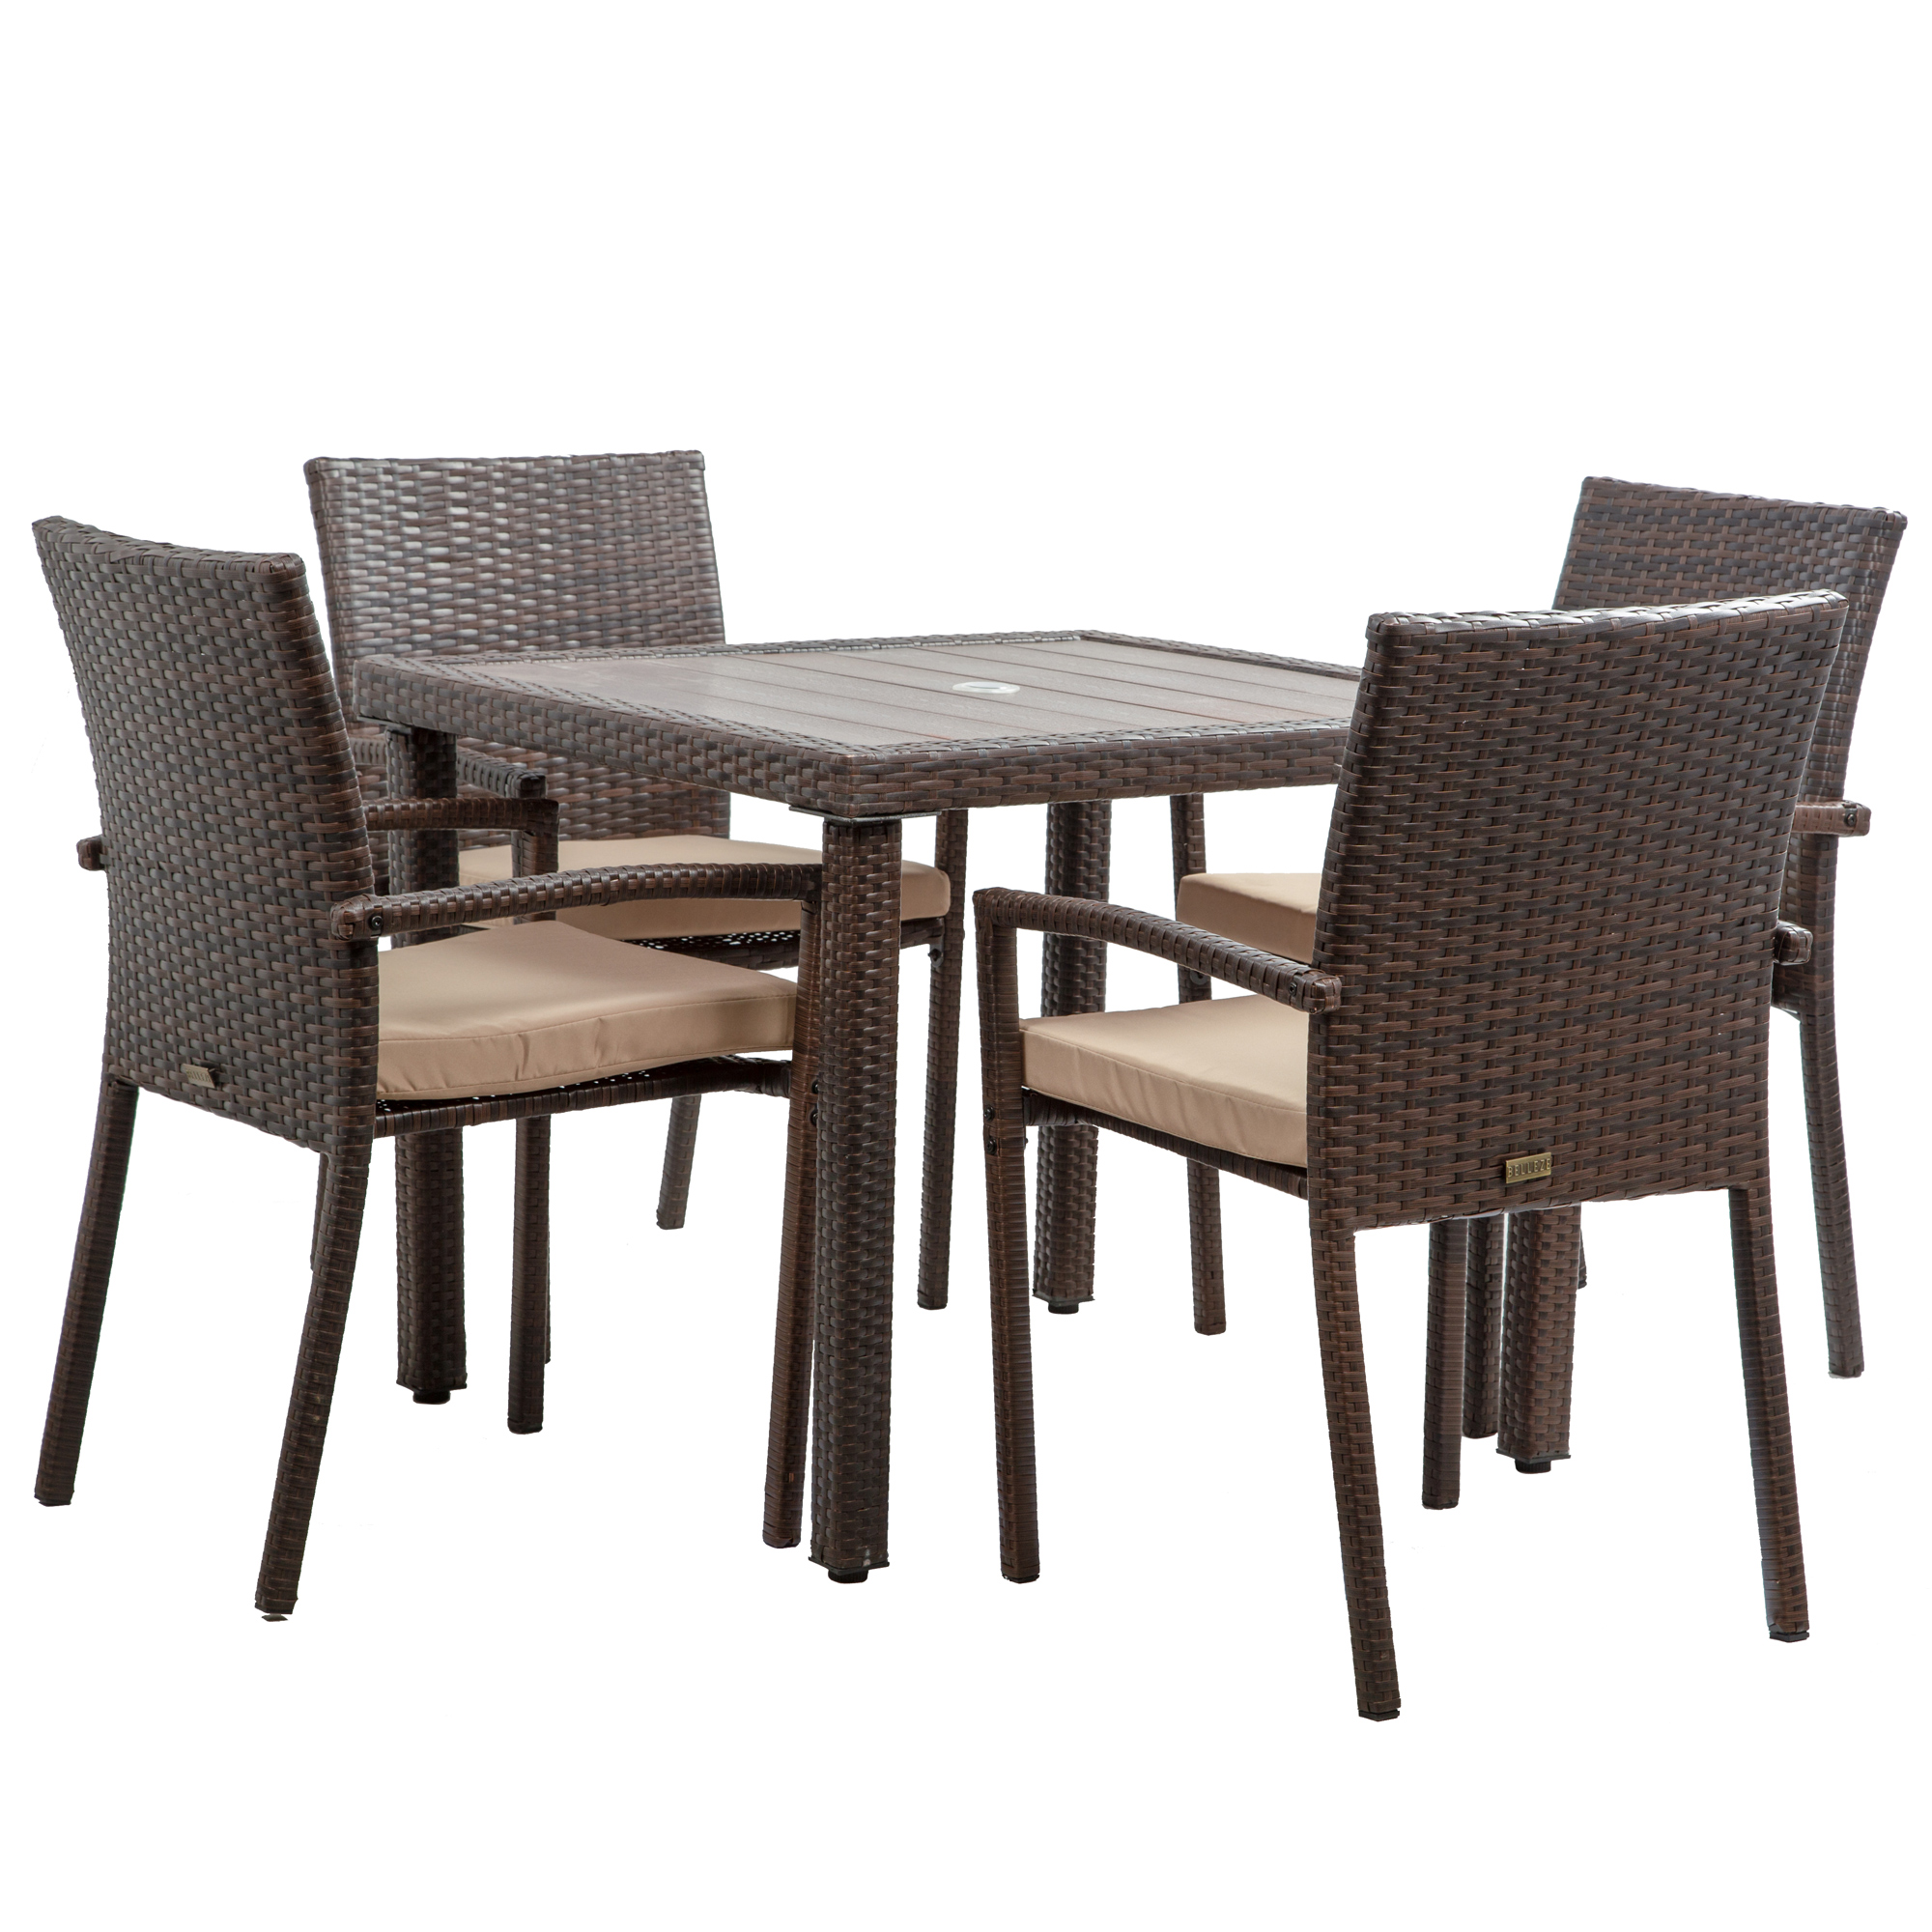 Wicker Patio Dining Set Table And Cushioned Chairs 2 Colors Brown Grey For Sale Online